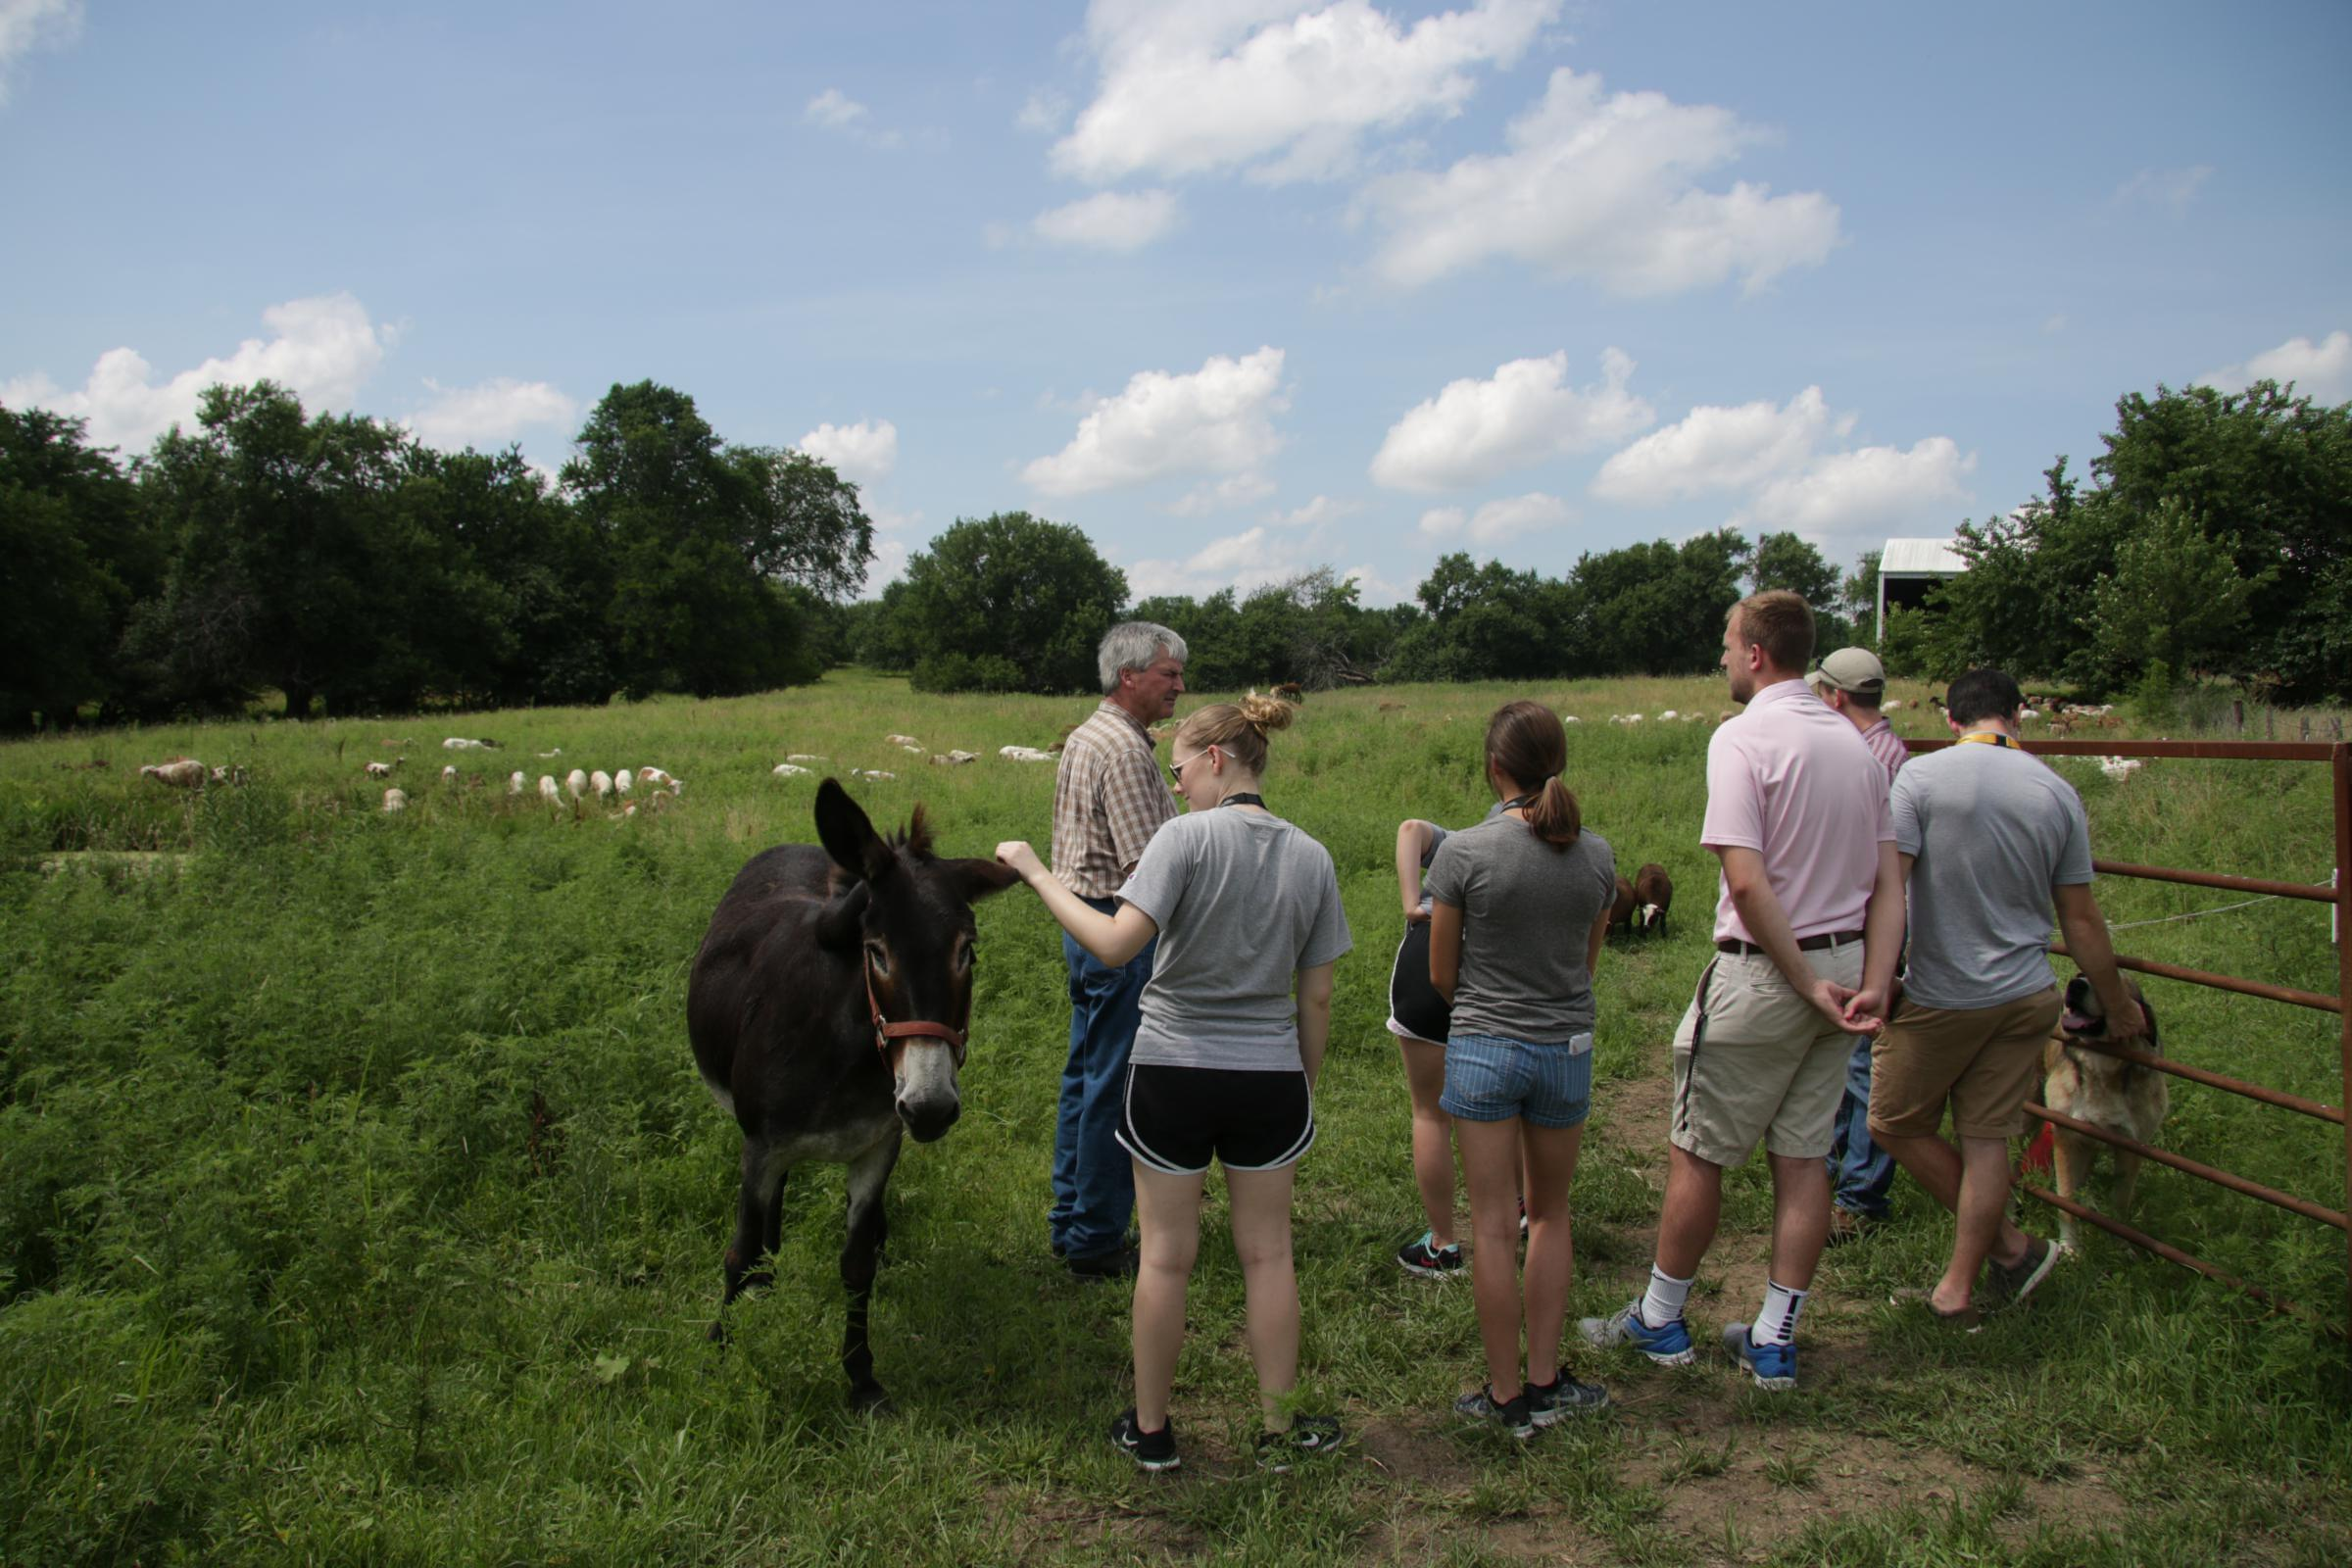 Health professions and medical students from the University of Missouri tour the Maplewood Acres Farm in Sedalia, Missouri.